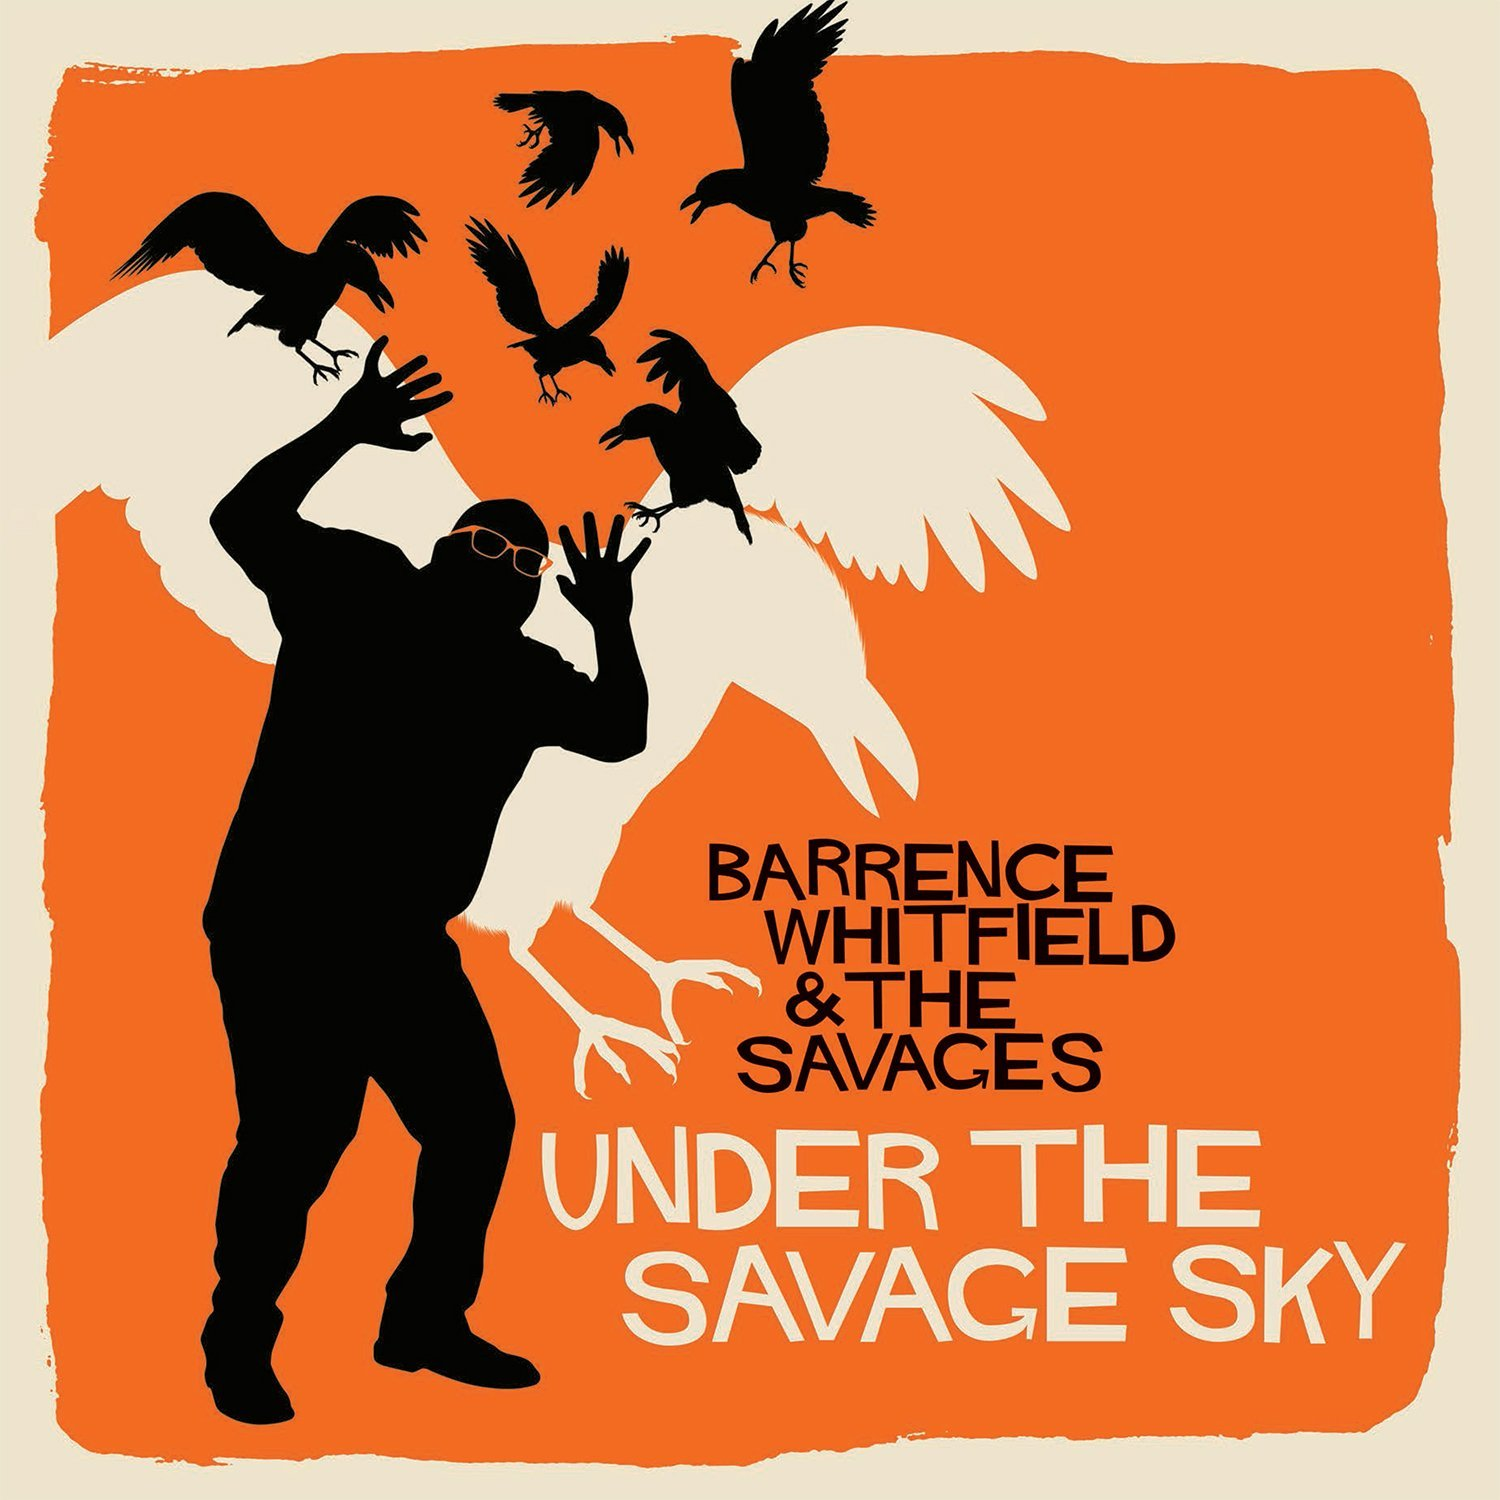 Barrence Whitfield & The Savages: Under The Savage Sky [Album Review]